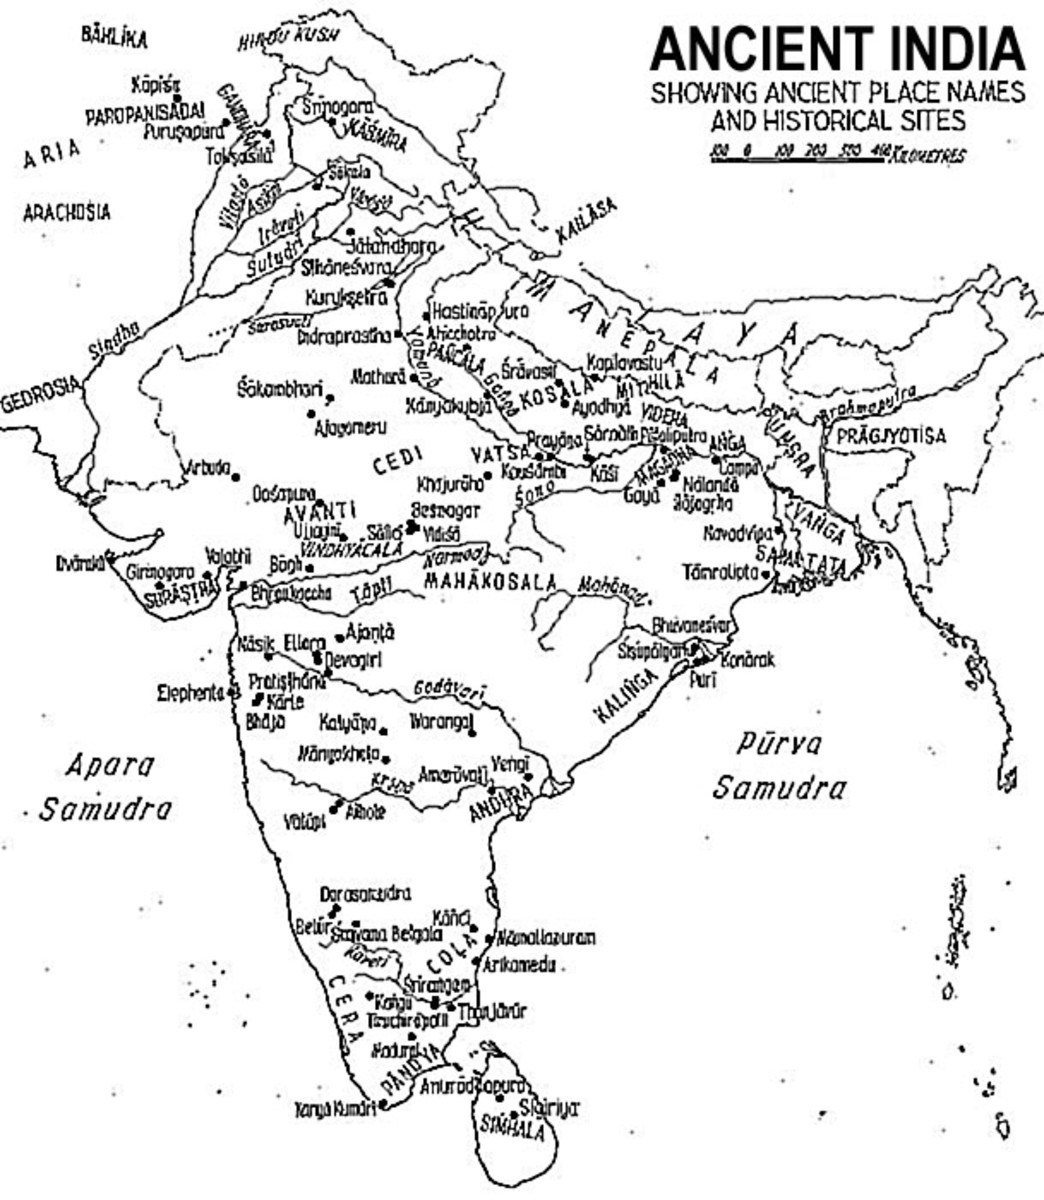 ANCIENT INDIAN PHILOSOPHICAL SCHOOLS